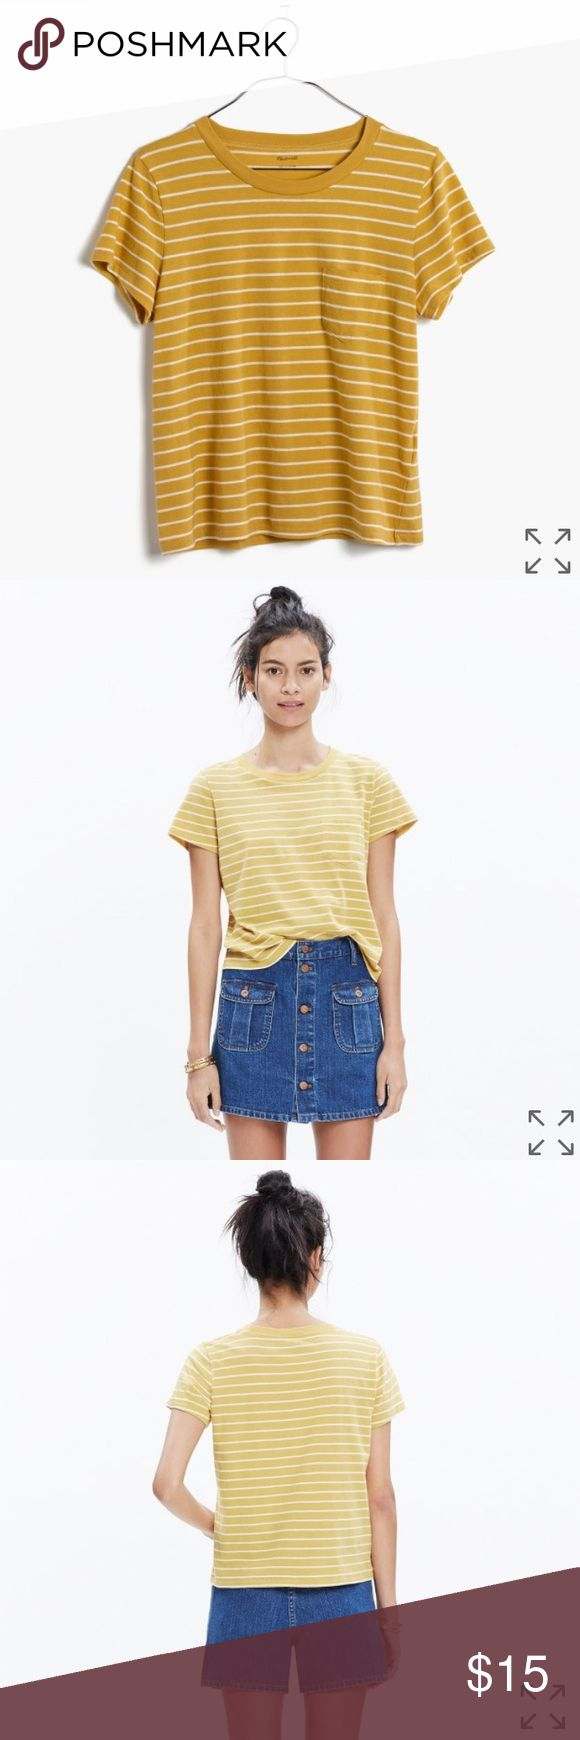 Madewell Radio Tee in Largo Stripe Madewell yellow & white striped tee size small. Cropped & form fitting. Adorable in the summer with high waisted jean shorts or in the winter layered! Madewell Tops Tees - Short Sleeve